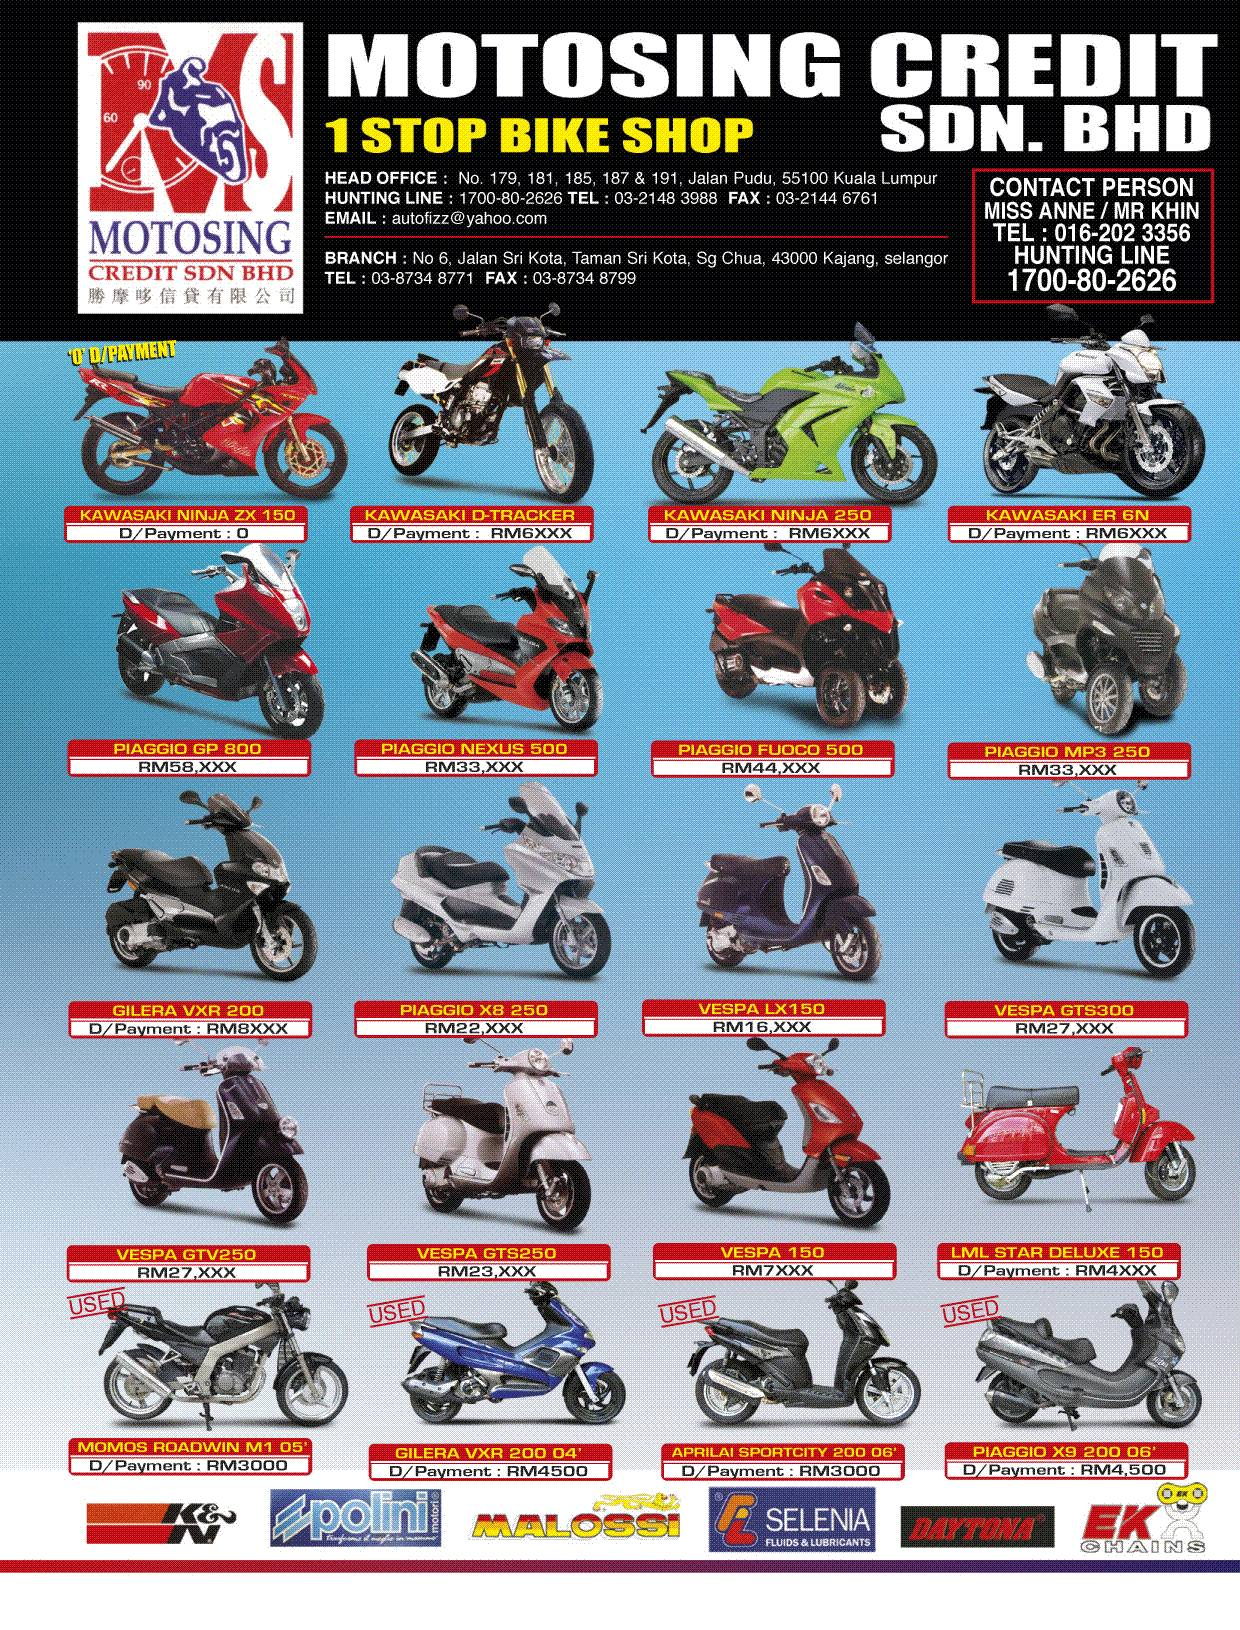 MOTORCYCLES FOR SALES